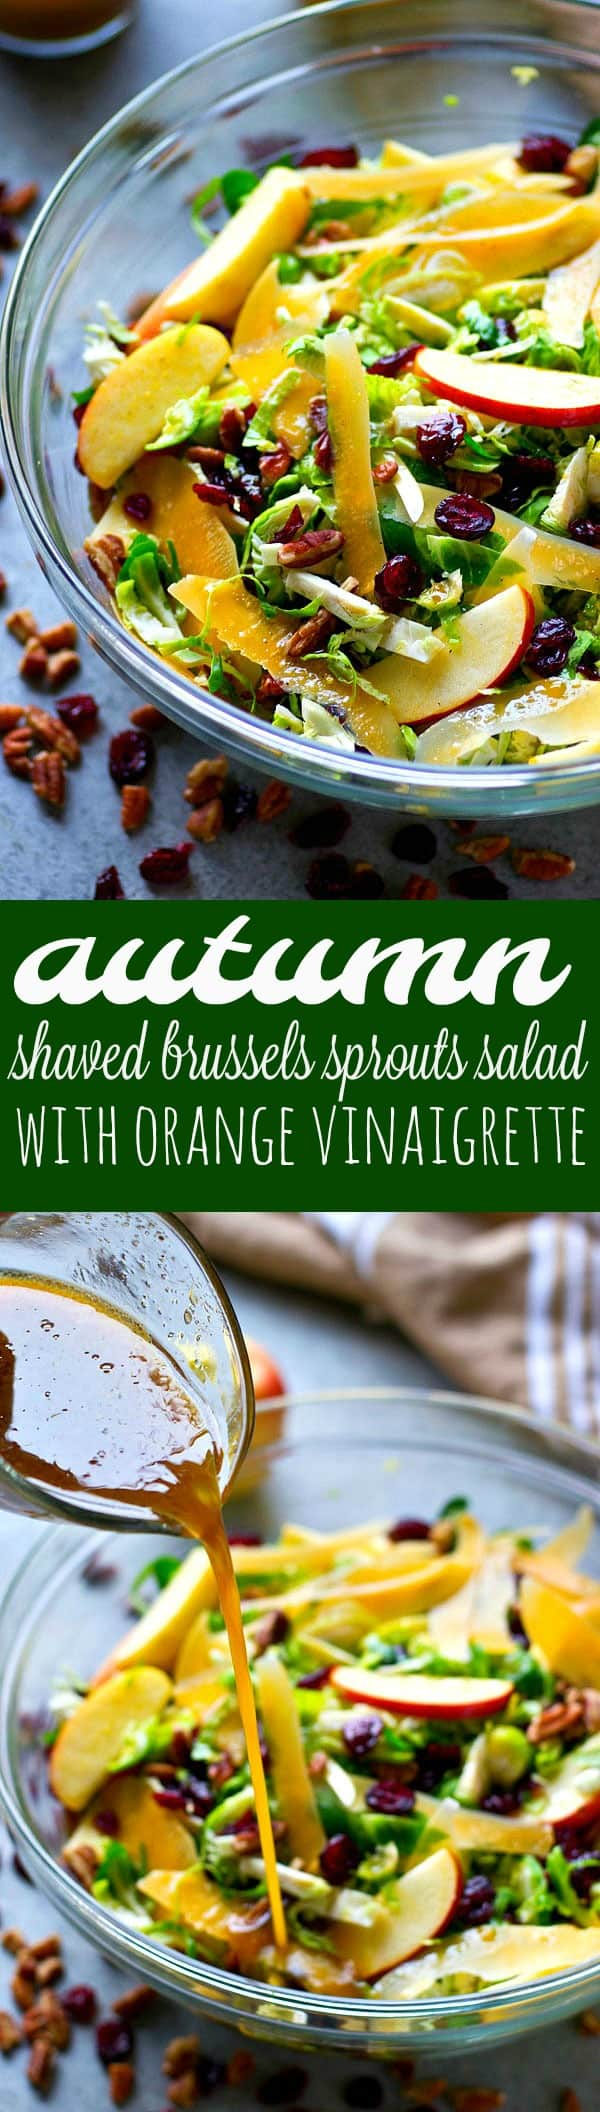 Packed with an abundance of autumn goodness and tossed in a citrus-y orange vinaigrette, this shaved brussels sprouts salad would be a perfect addition to your Thanksgiving menu!